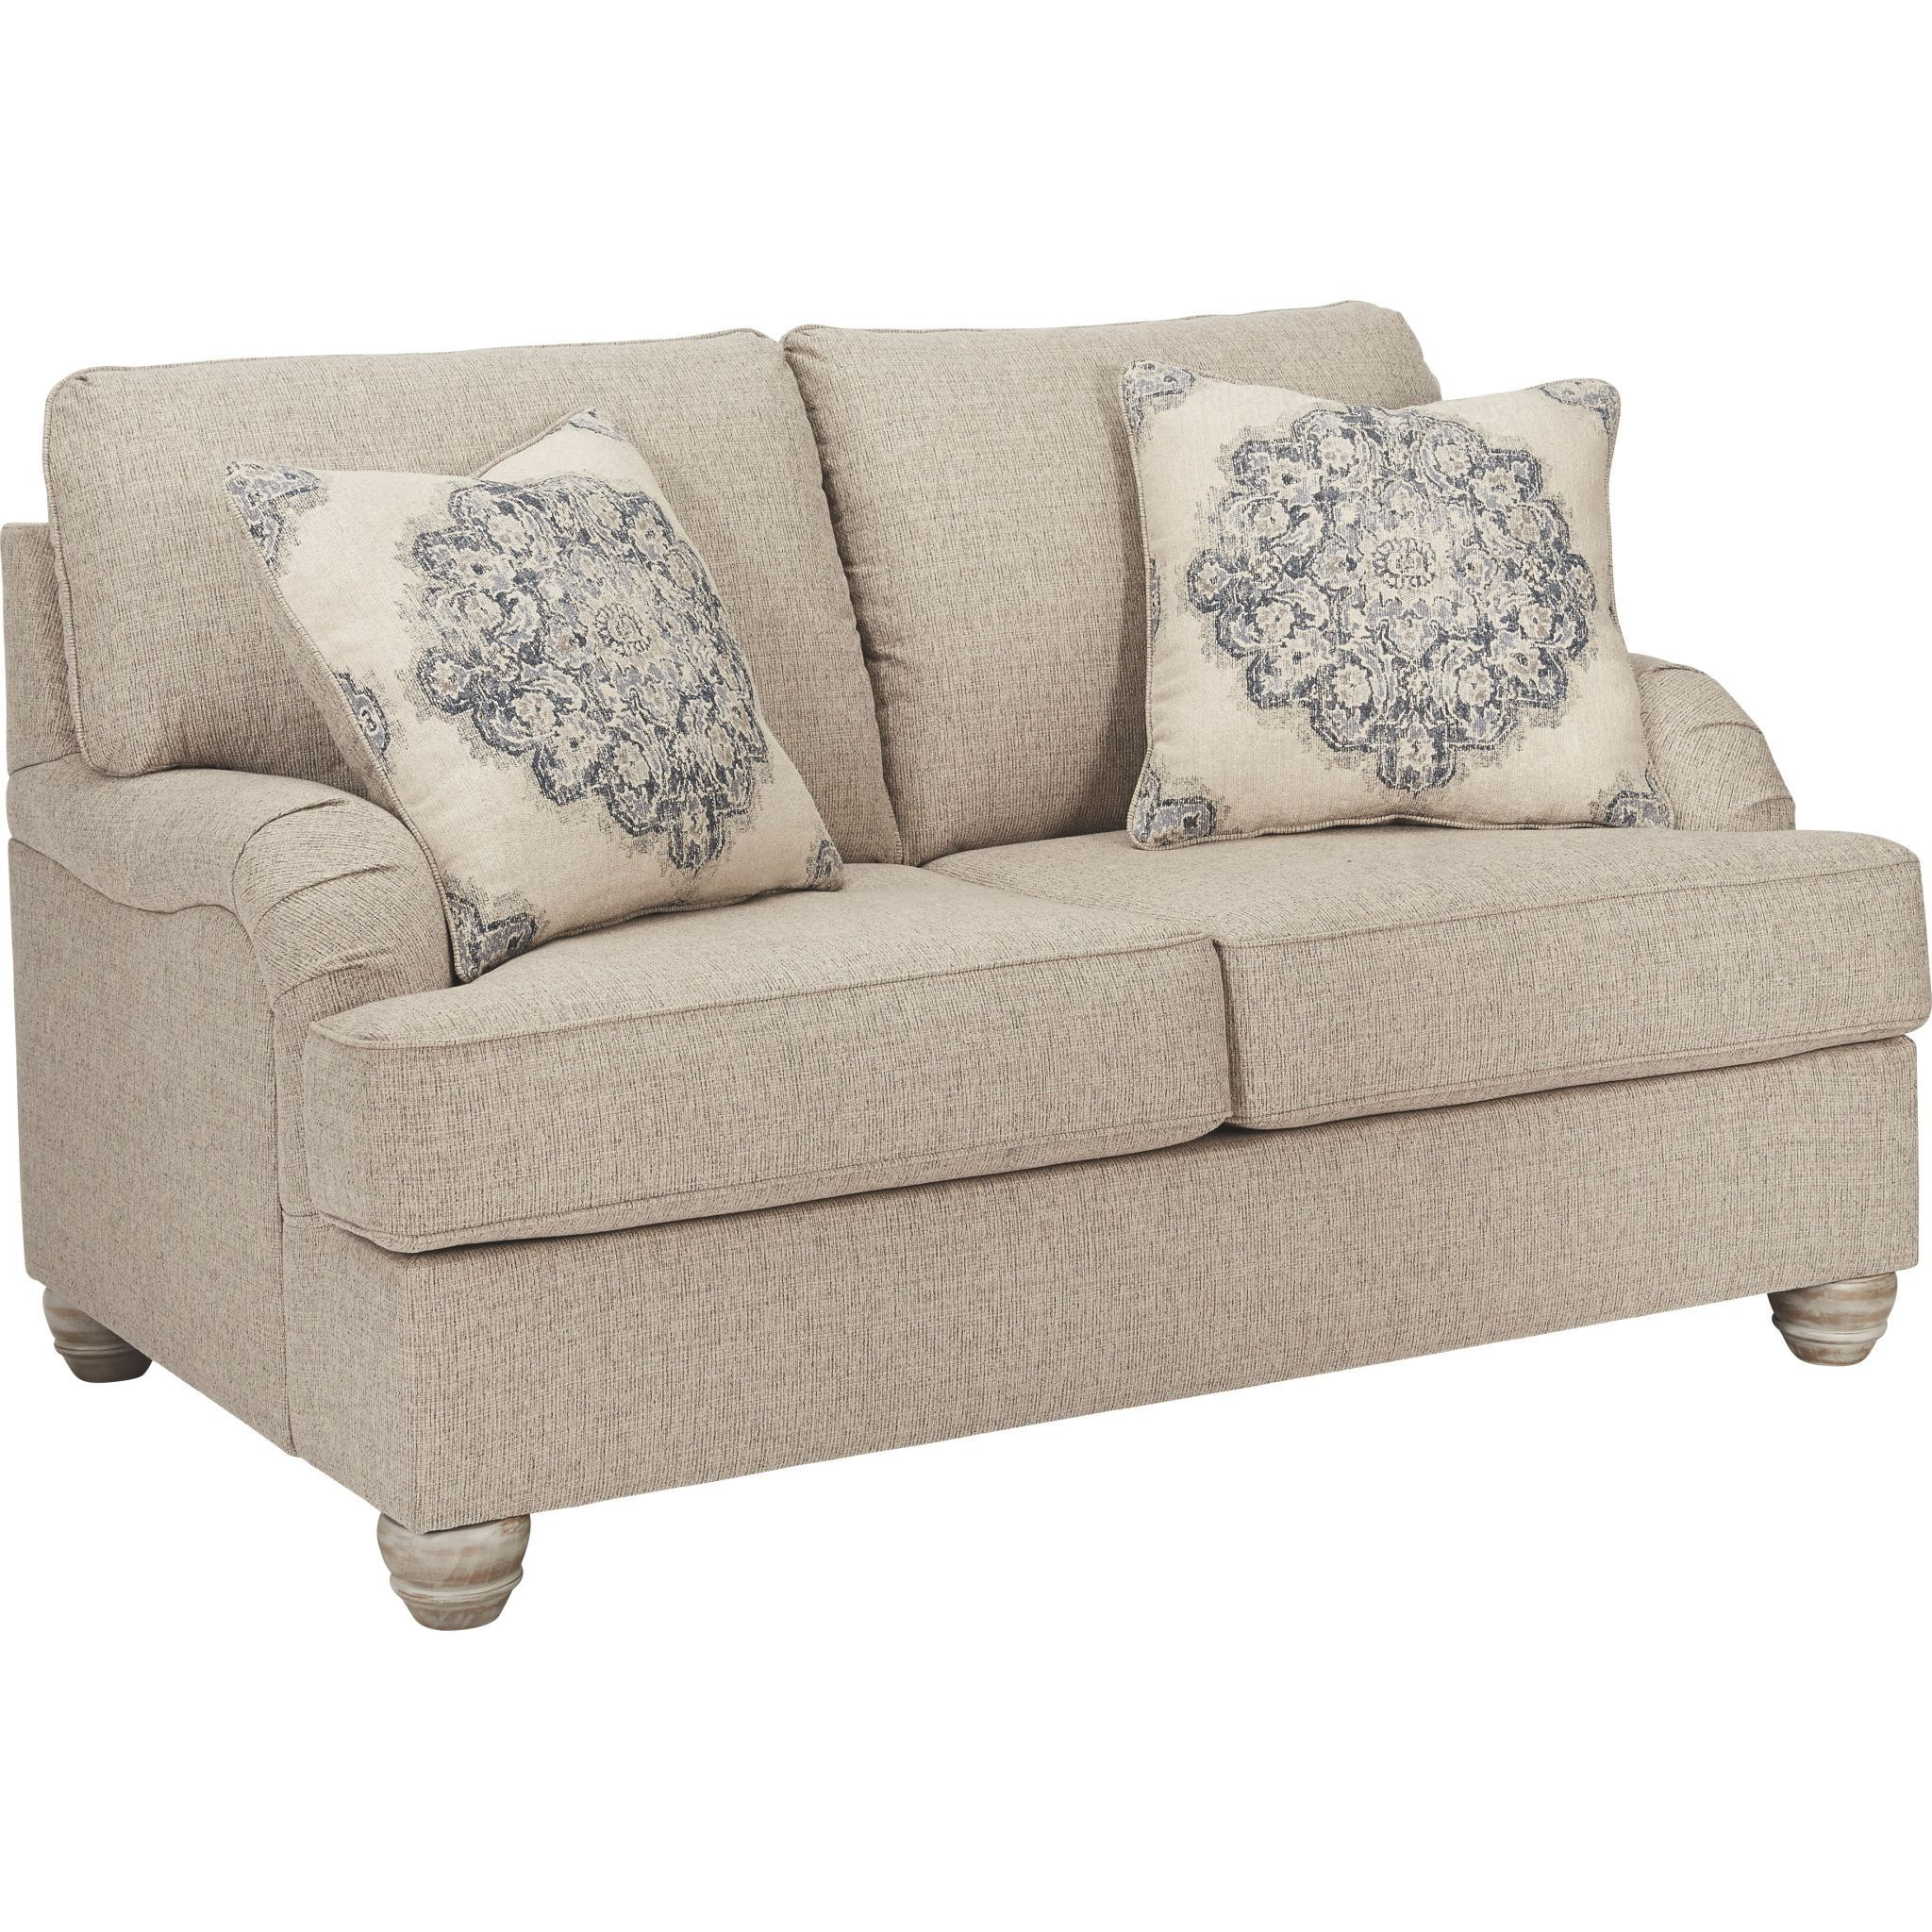 Dandrea Exclusive Loveseat Love Seat Furniture Ashley Furniture